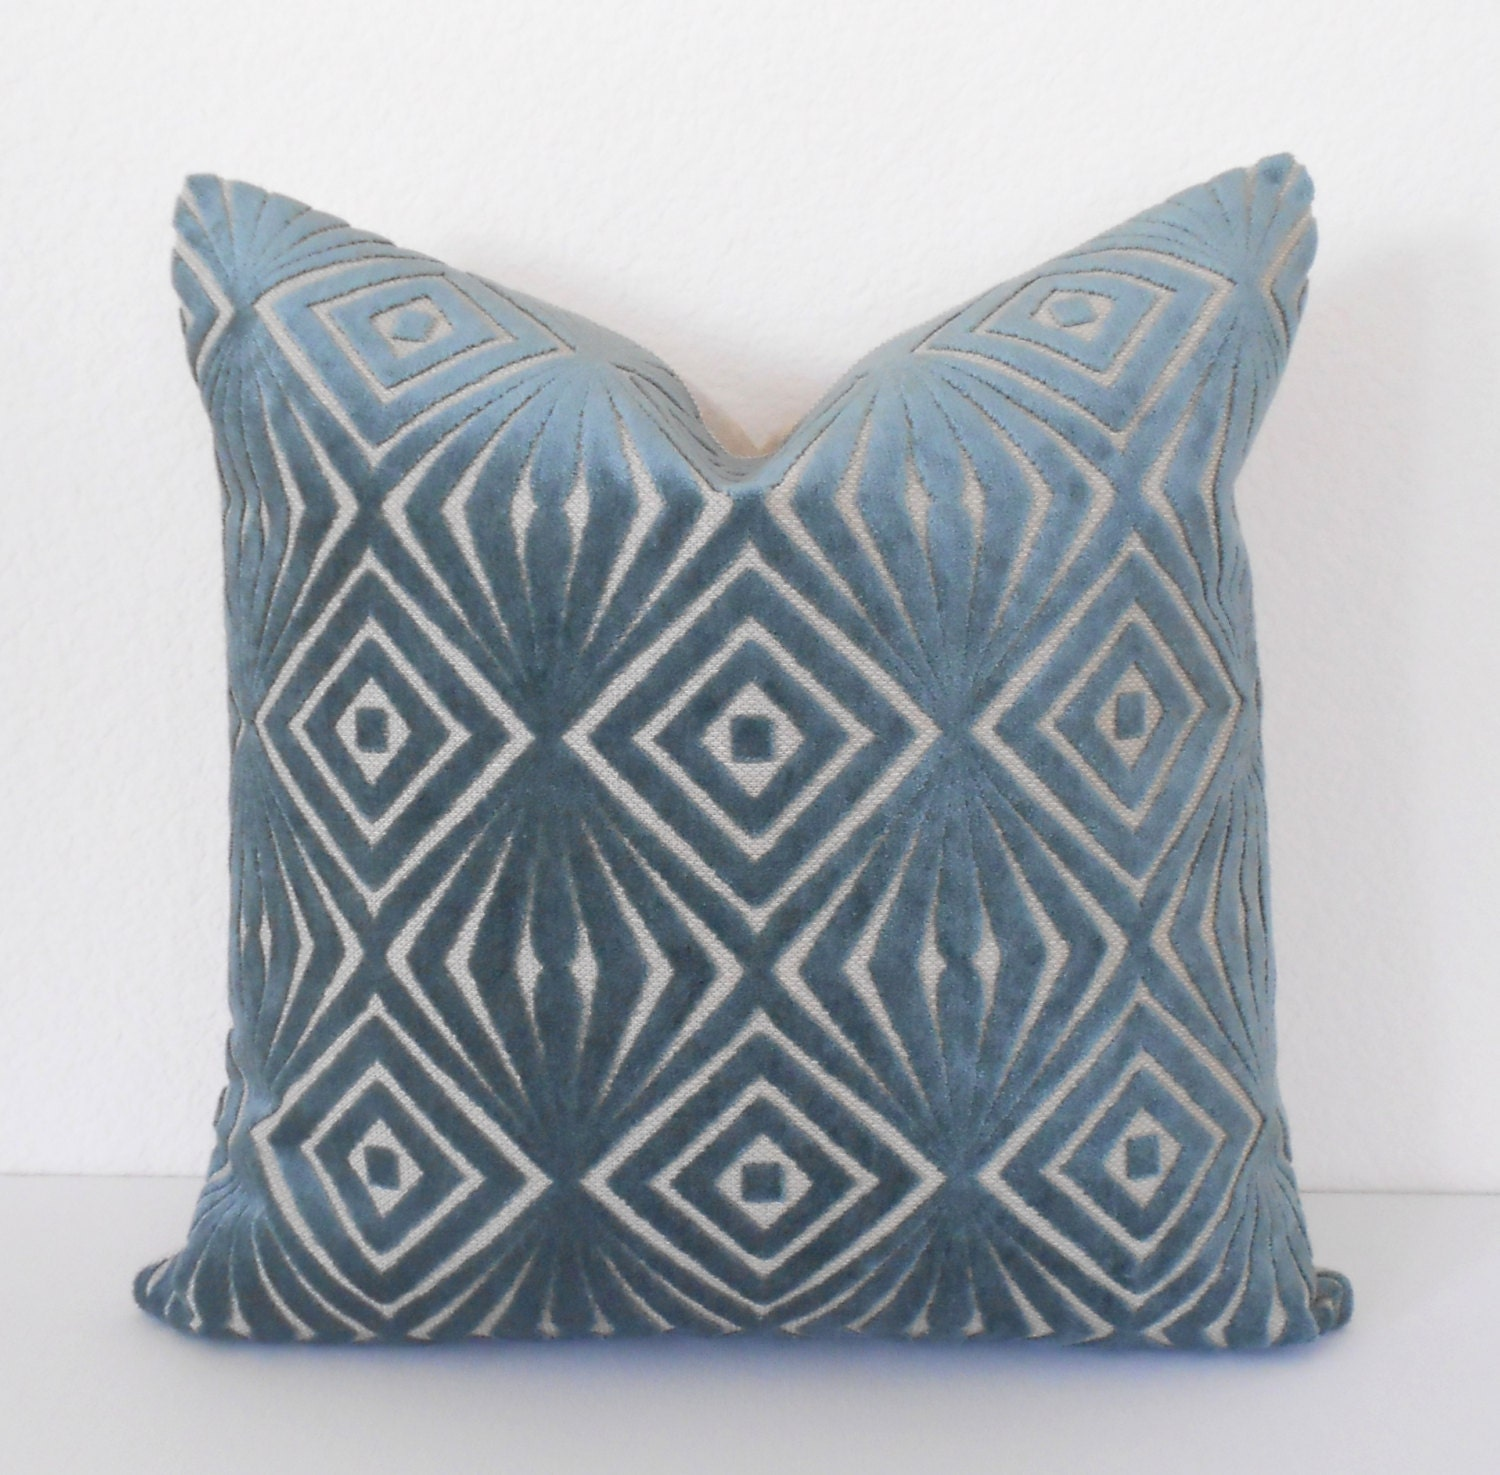 Decorative pillow cover teal blue cut velvet retro